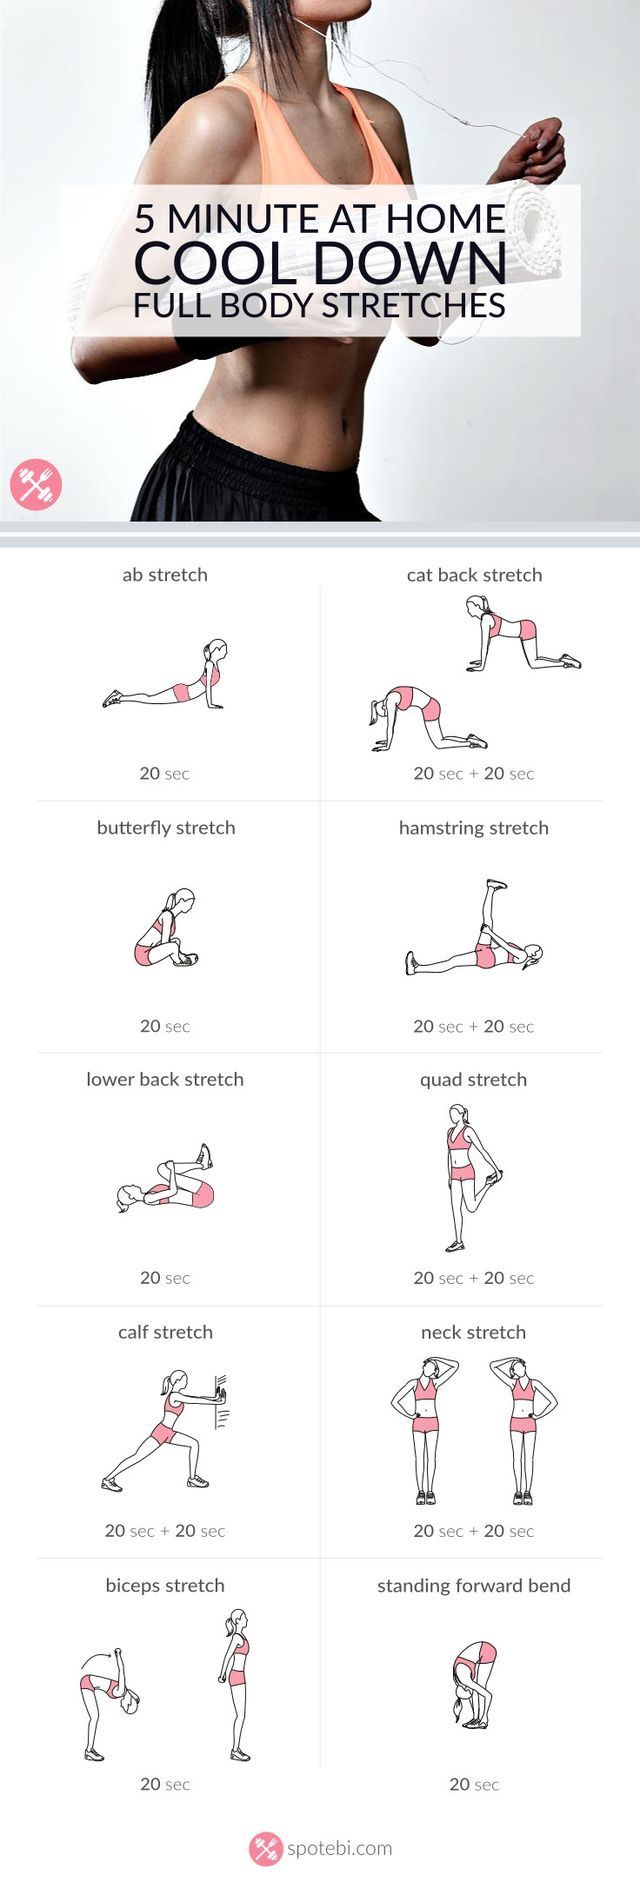 Cool Down Stretches